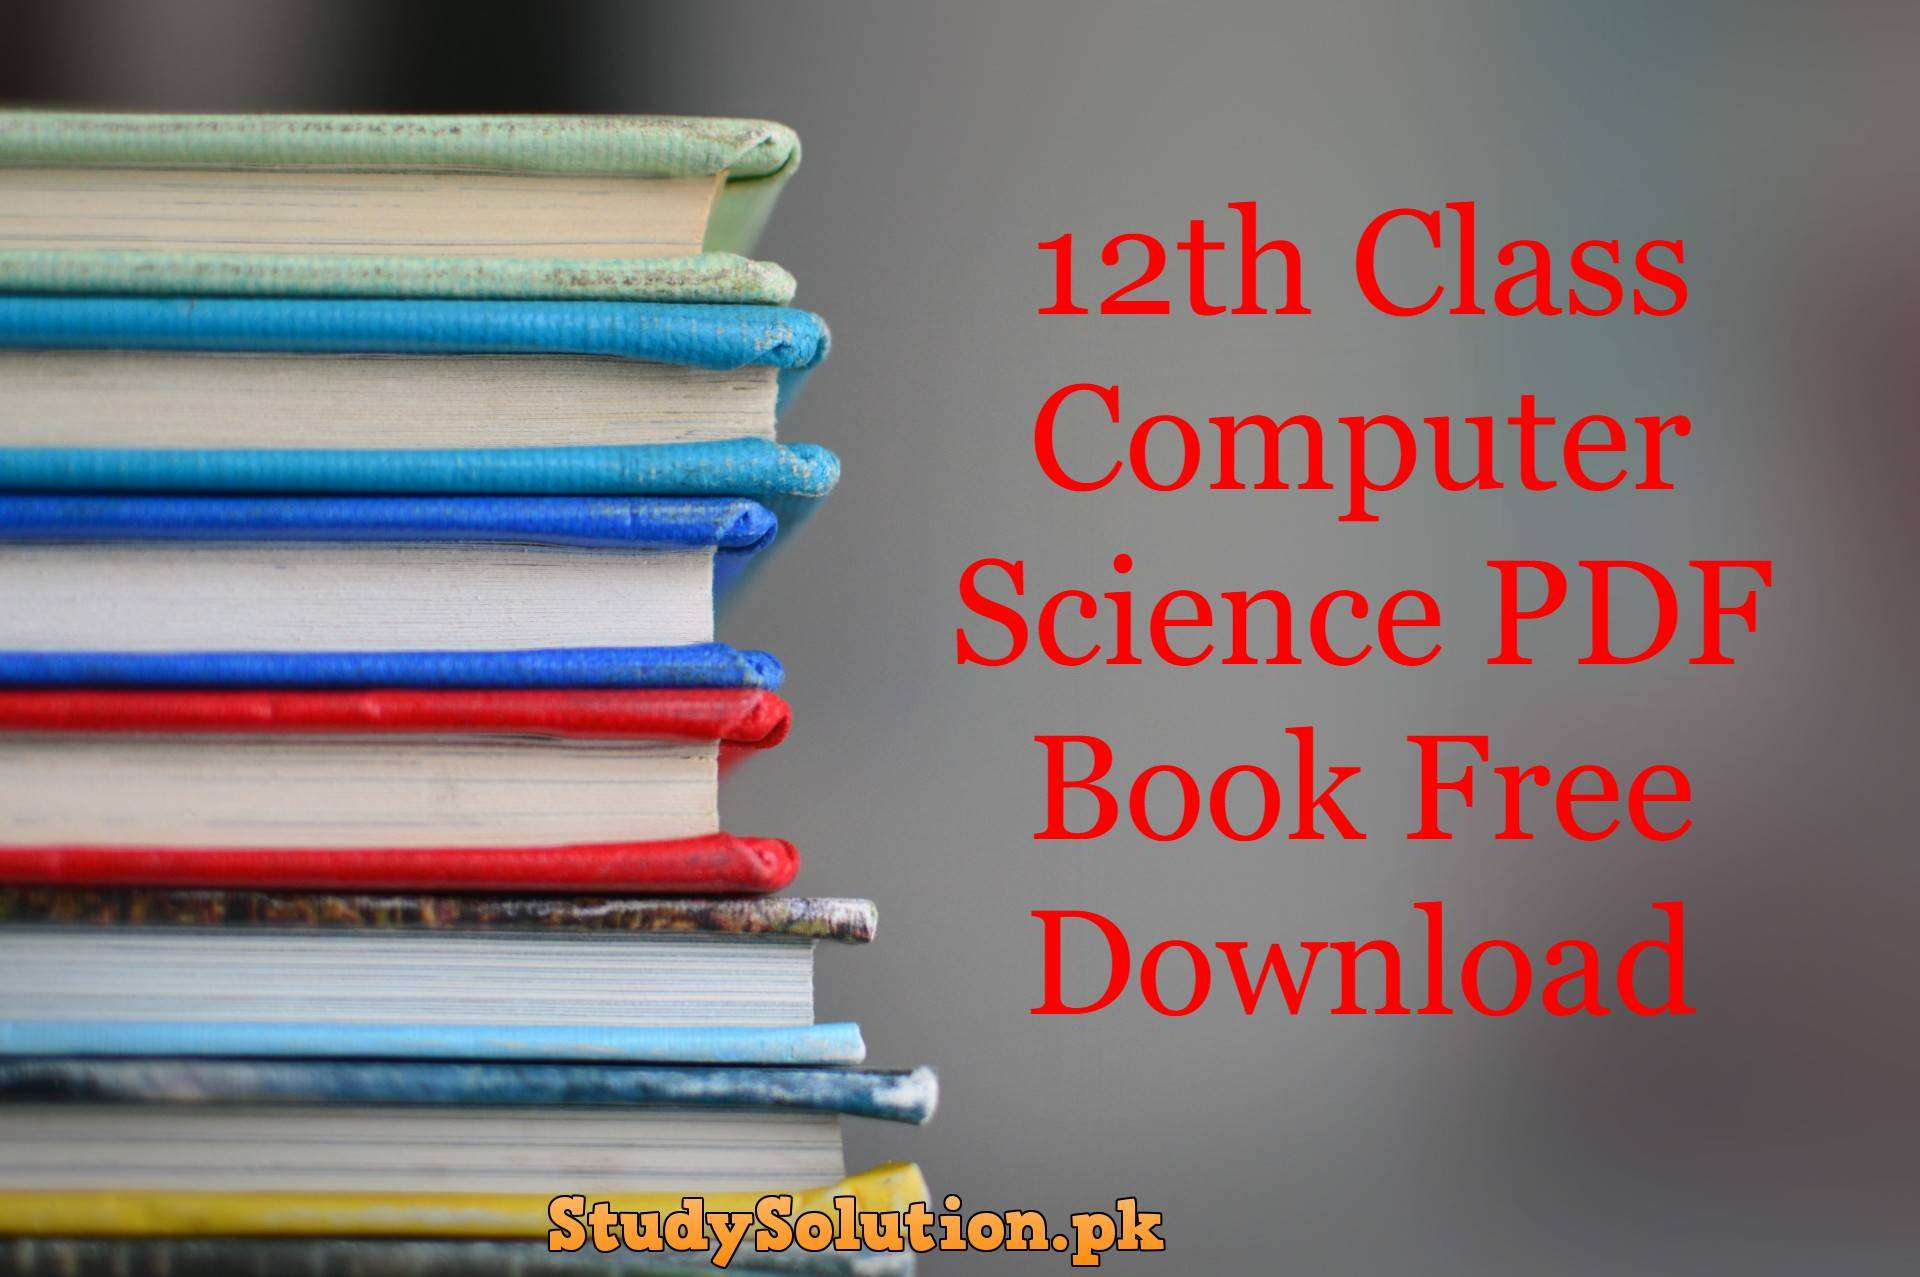 12th Class Computer Science PDF Book Free Download